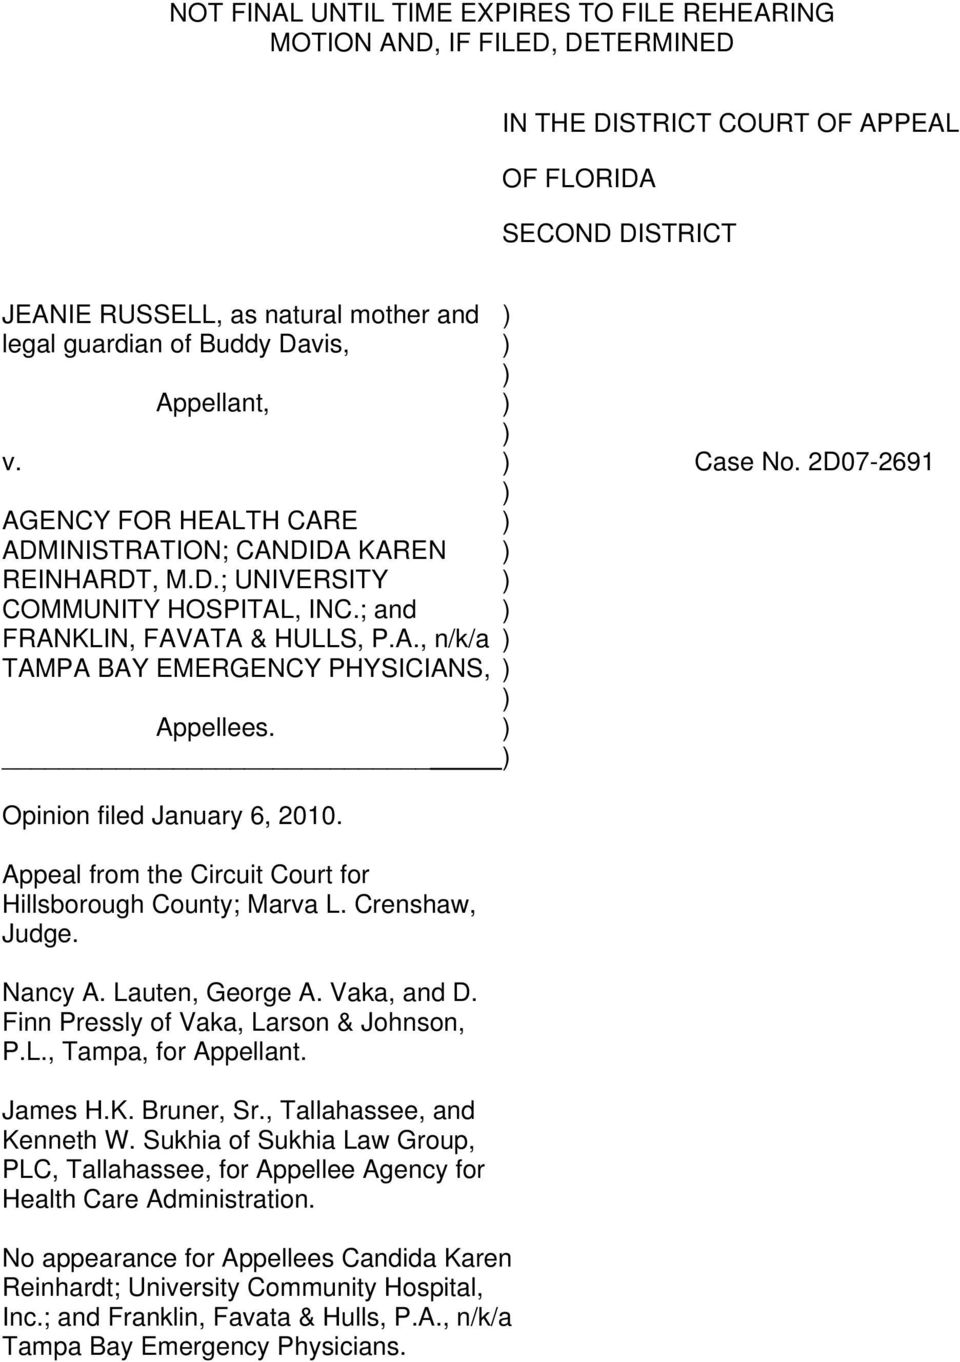 Opinion filed January 6, 2010. Appeal from the Circuit Court for Hillsborough County; Marva L. Crenshaw, Judge. Nancy A. Lauten, George A. Vaka, and D. Finn Pressly of Vaka, Larson & Johnson, P.L., Tampa, for Appellant.